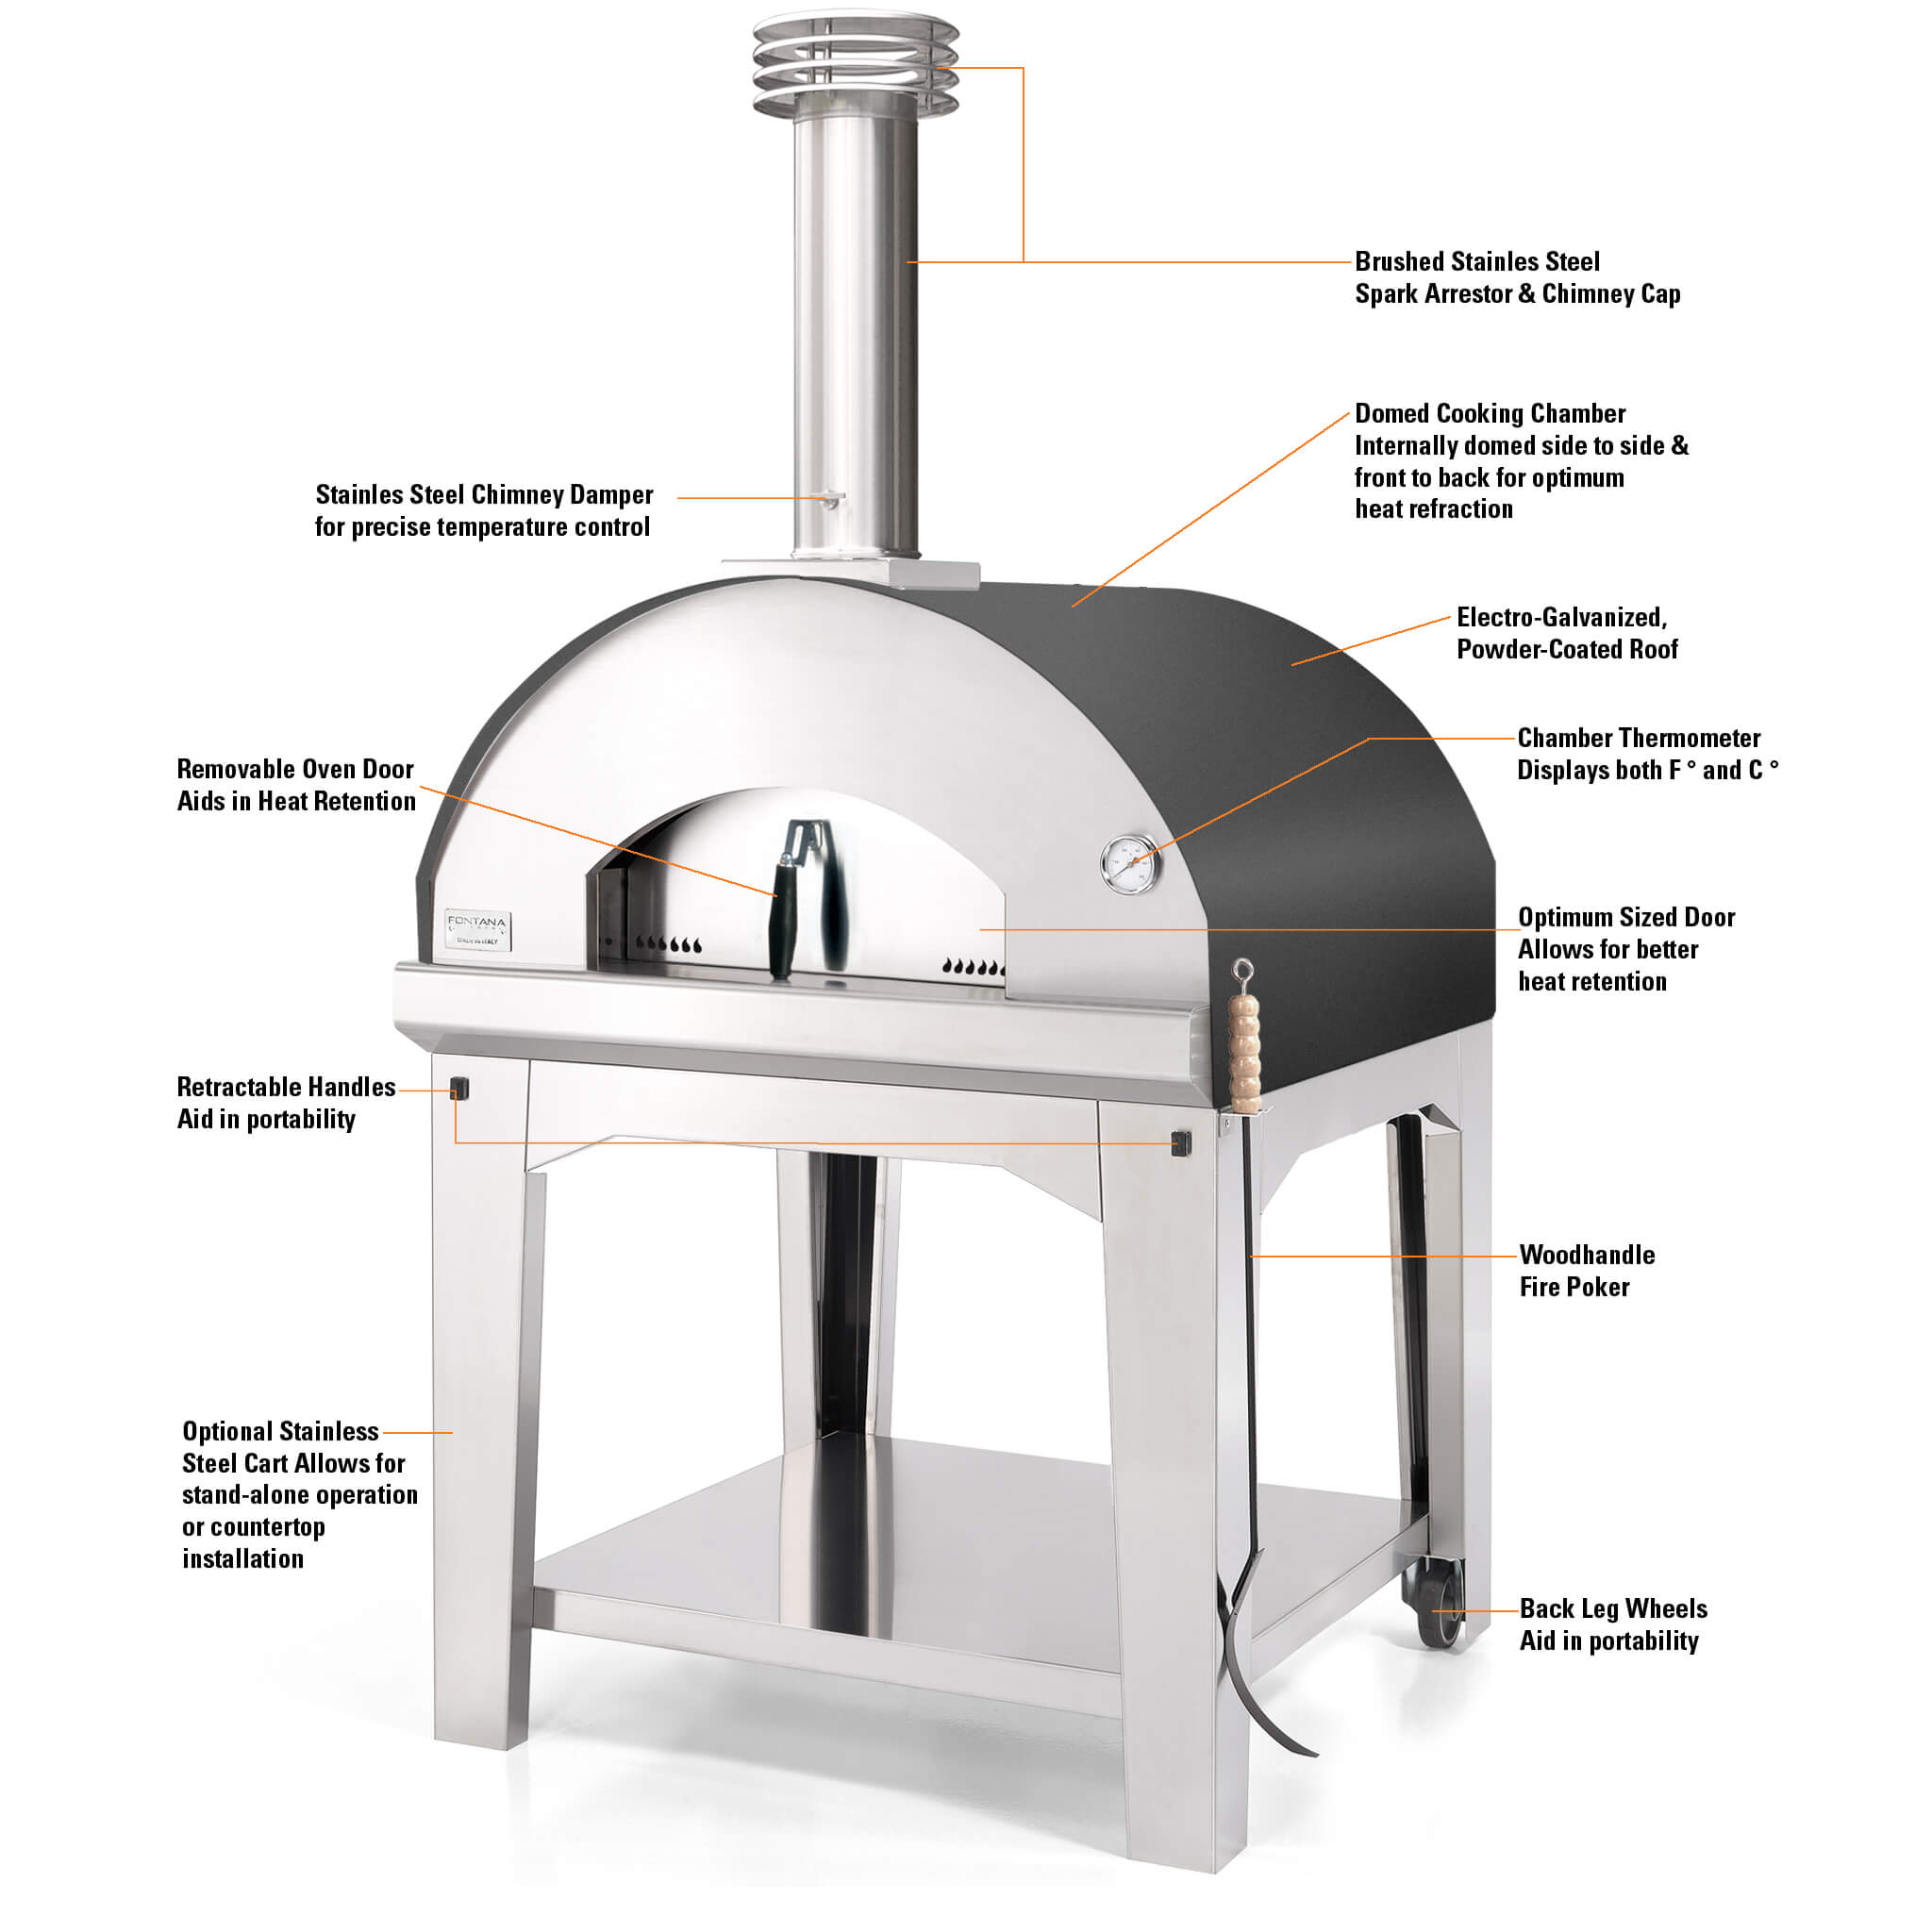 Features of the Marinara Wood-fired Pizza Oven